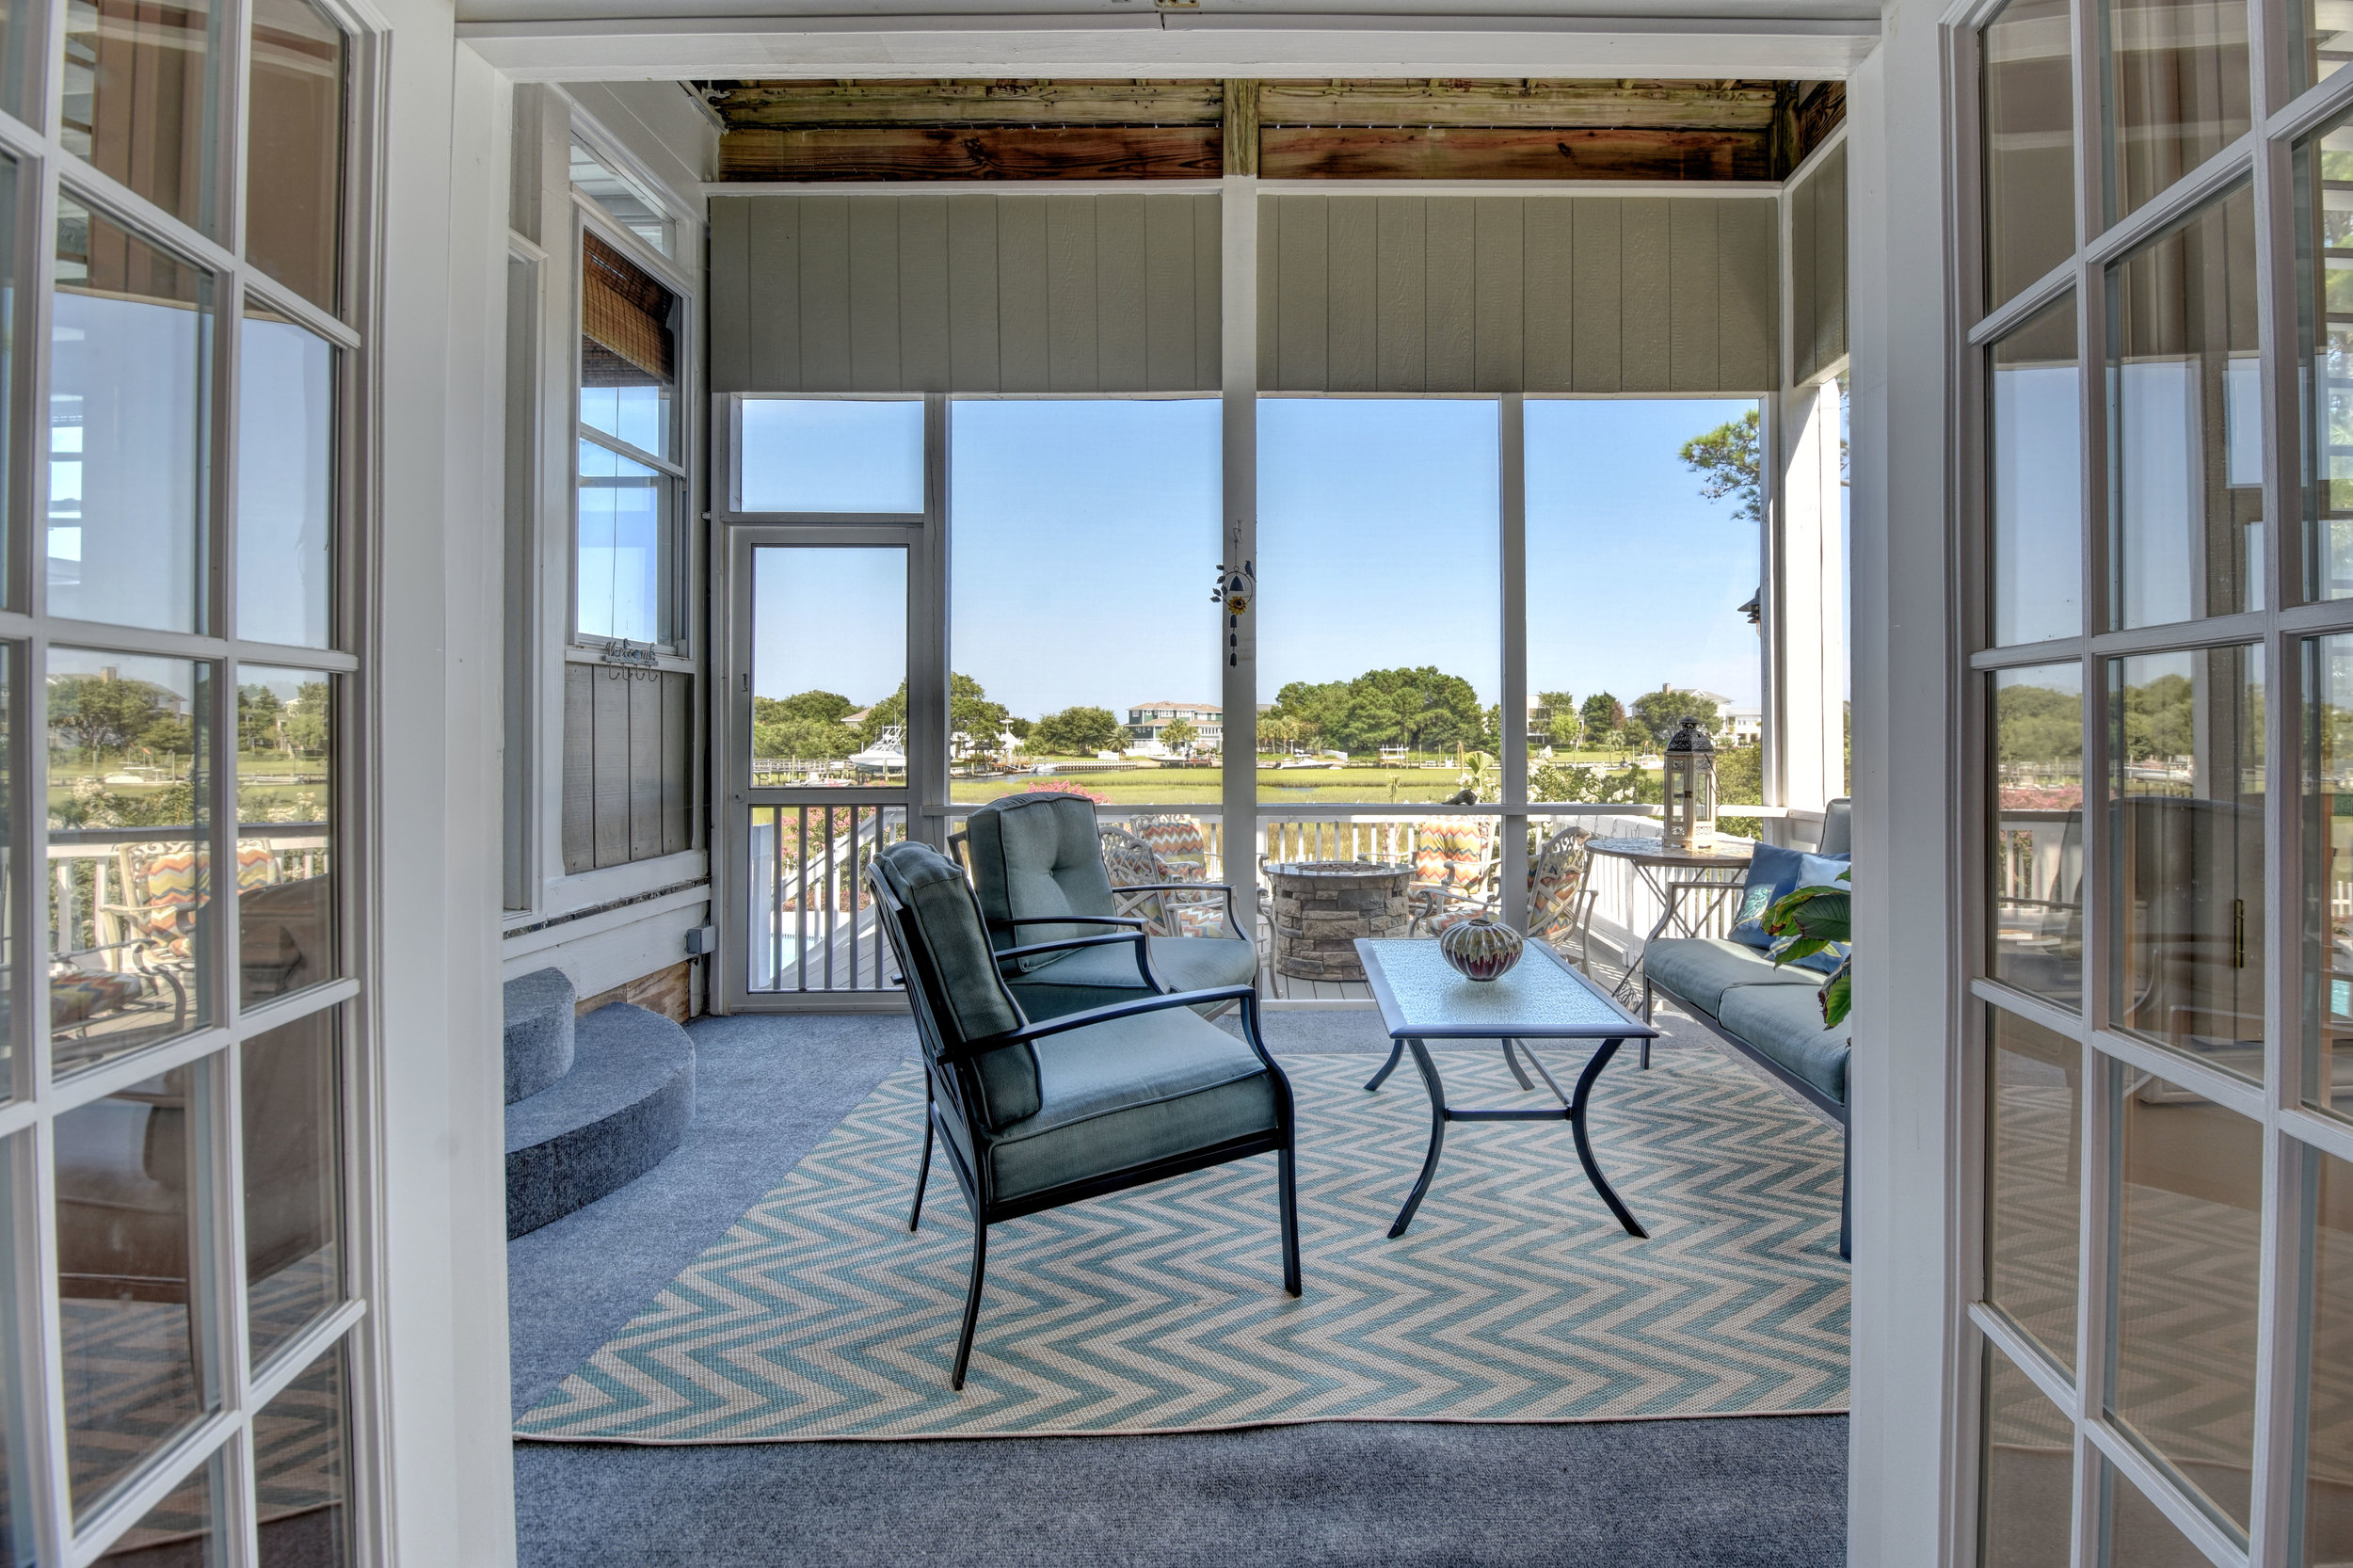 842 Shinn Point Rd Wilmington-print-049-103-Screened Porch-4200x2800-300dpi.jpg